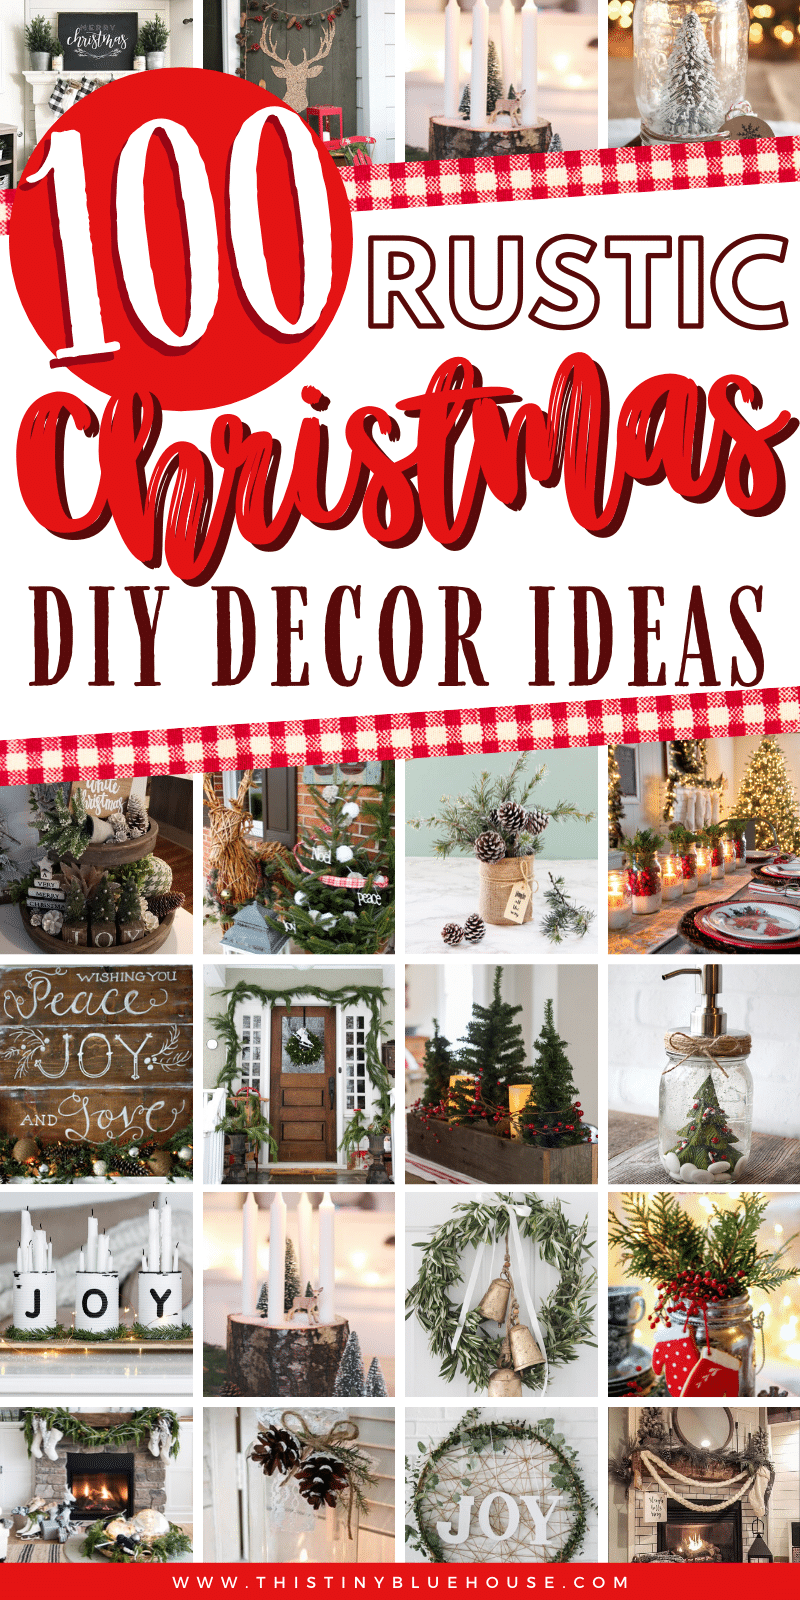 Add a touch of rustic cozy to the inside and outside of your home with these stunning DIY rustic Christmas decor ideas. 100+ STUNNING best ideas! #DIYChristmasDecor #DIYChristmasDecorDollarStore #DIYChristmasDecorRustic #DIYChristmasDecorFarmhouse #DIYChristmasDecorCheap #DIYCHristmasDecorRusticCenterPieces #DIYChristmasDecorRusticBudget #BeautifulRusticChristmasDecor